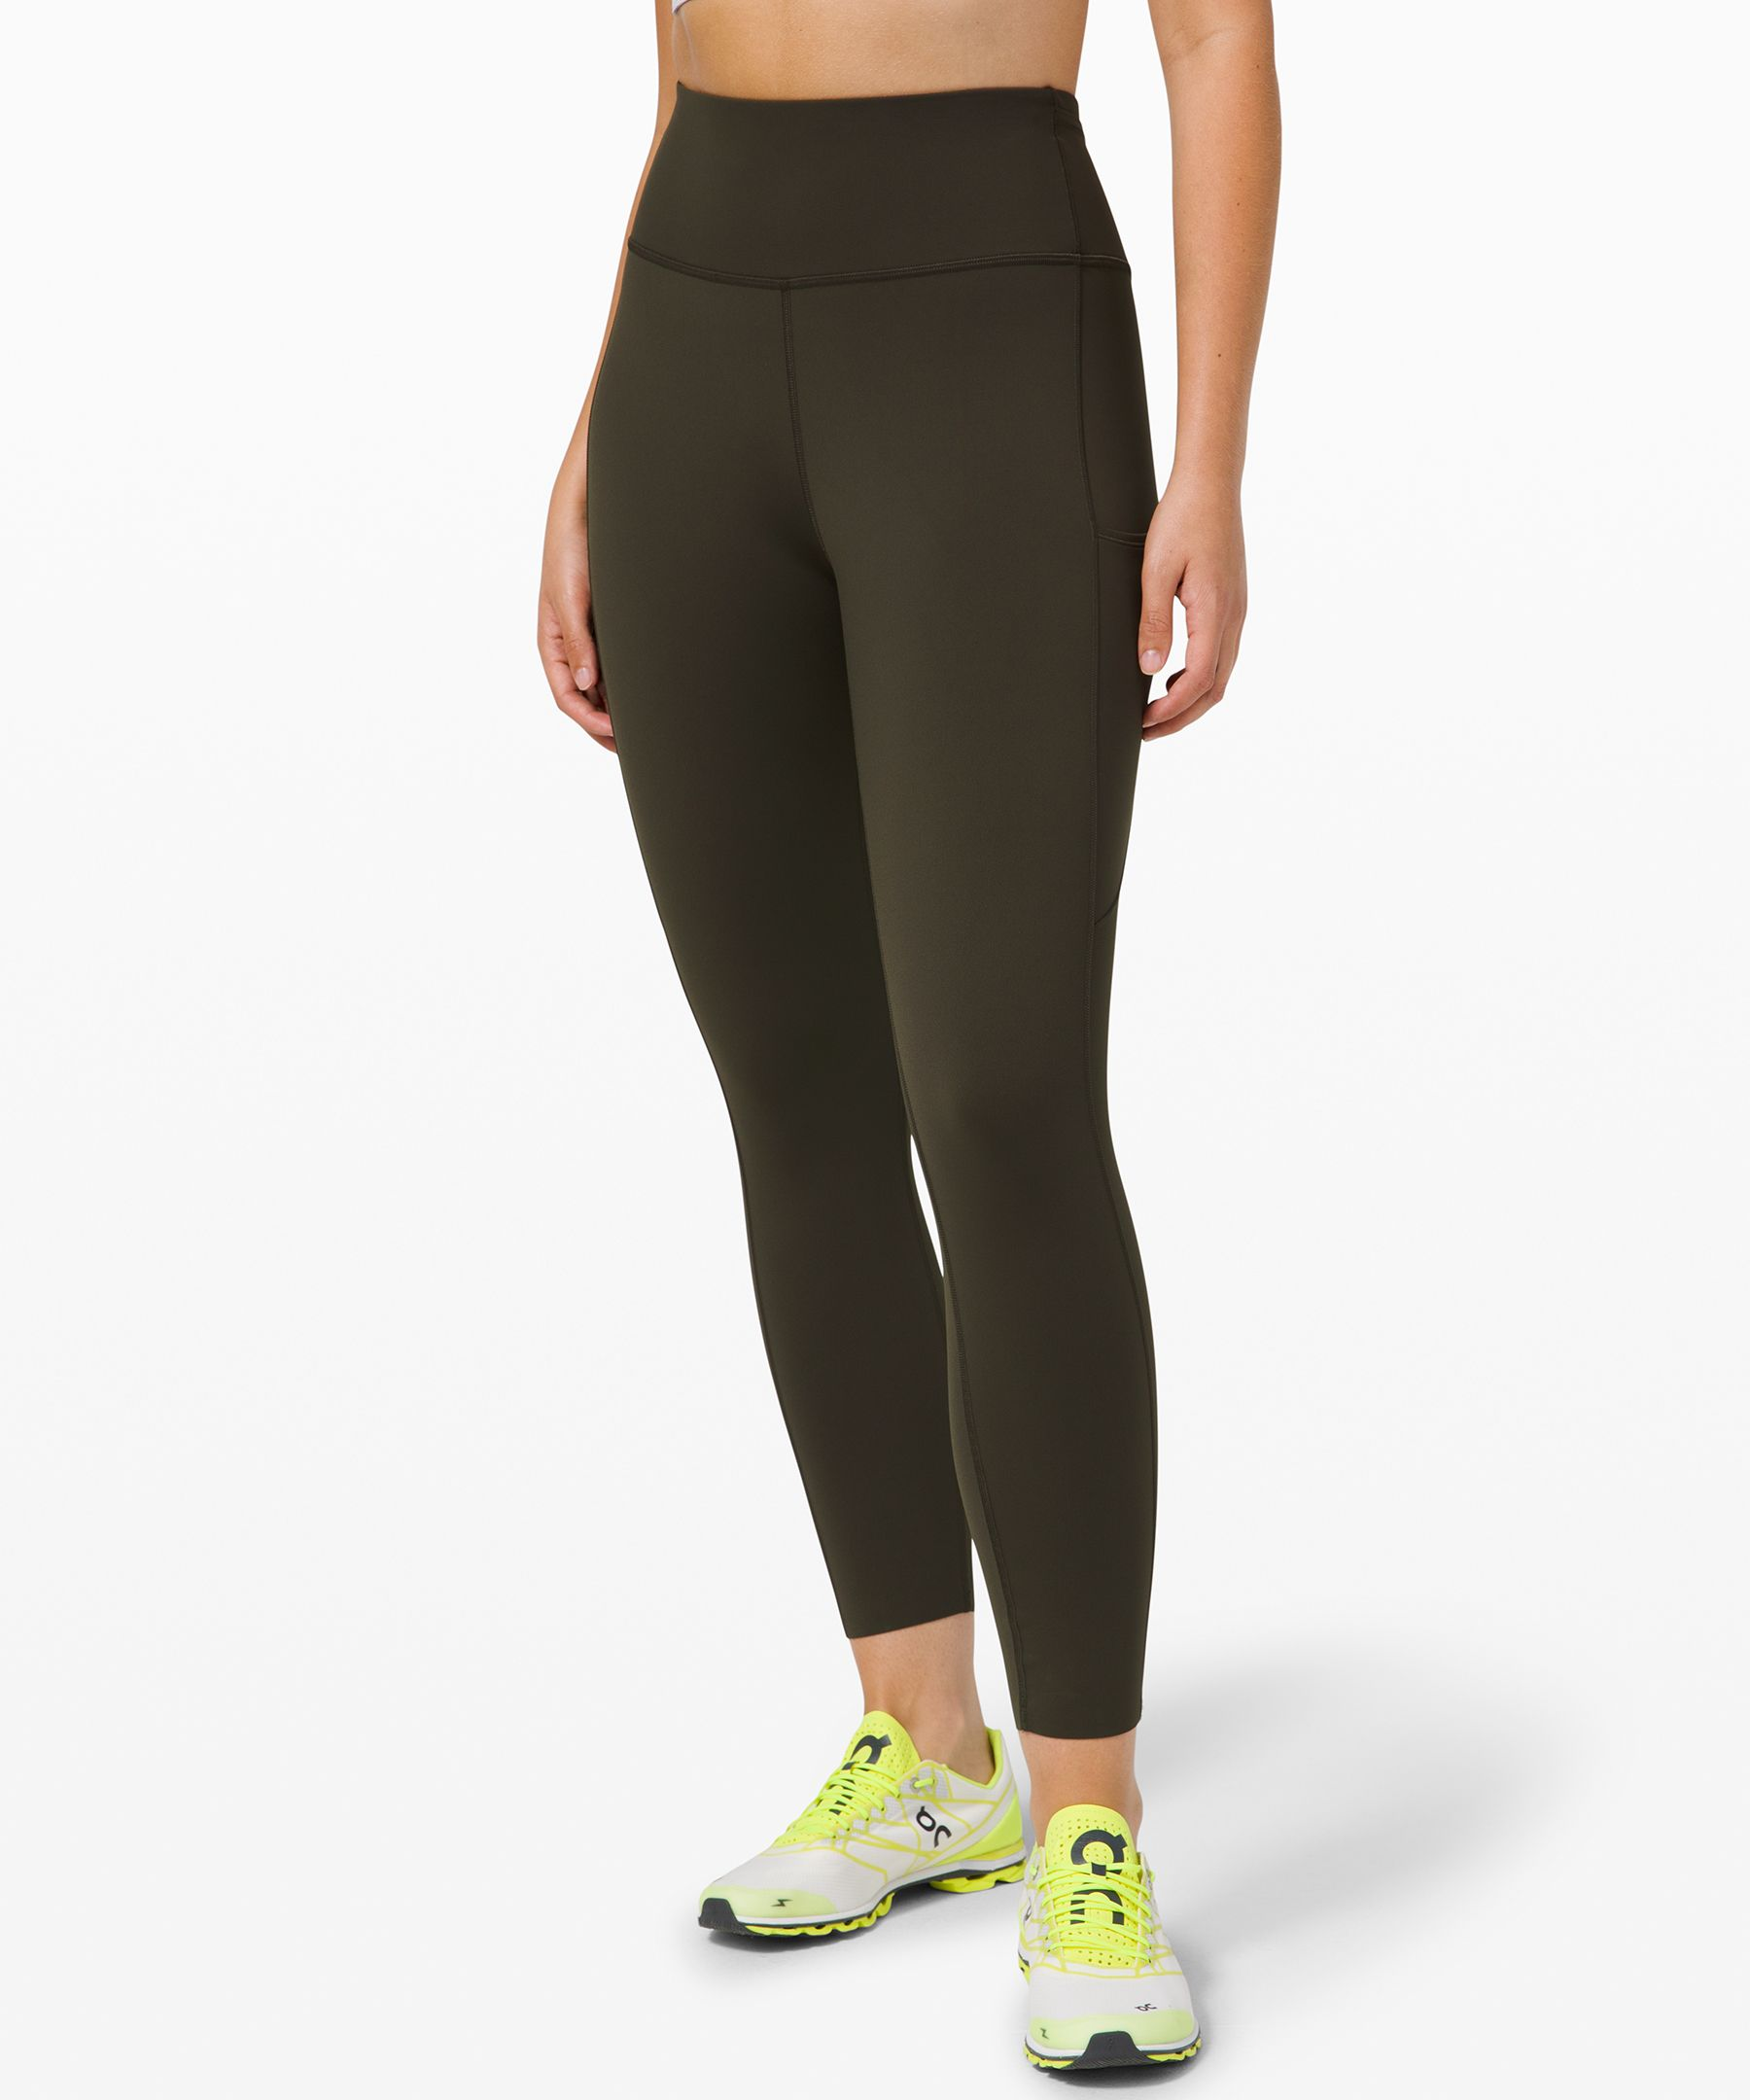 "Fast & Free 7/8 Tight Ii Nulux 25"" by Lululemon"